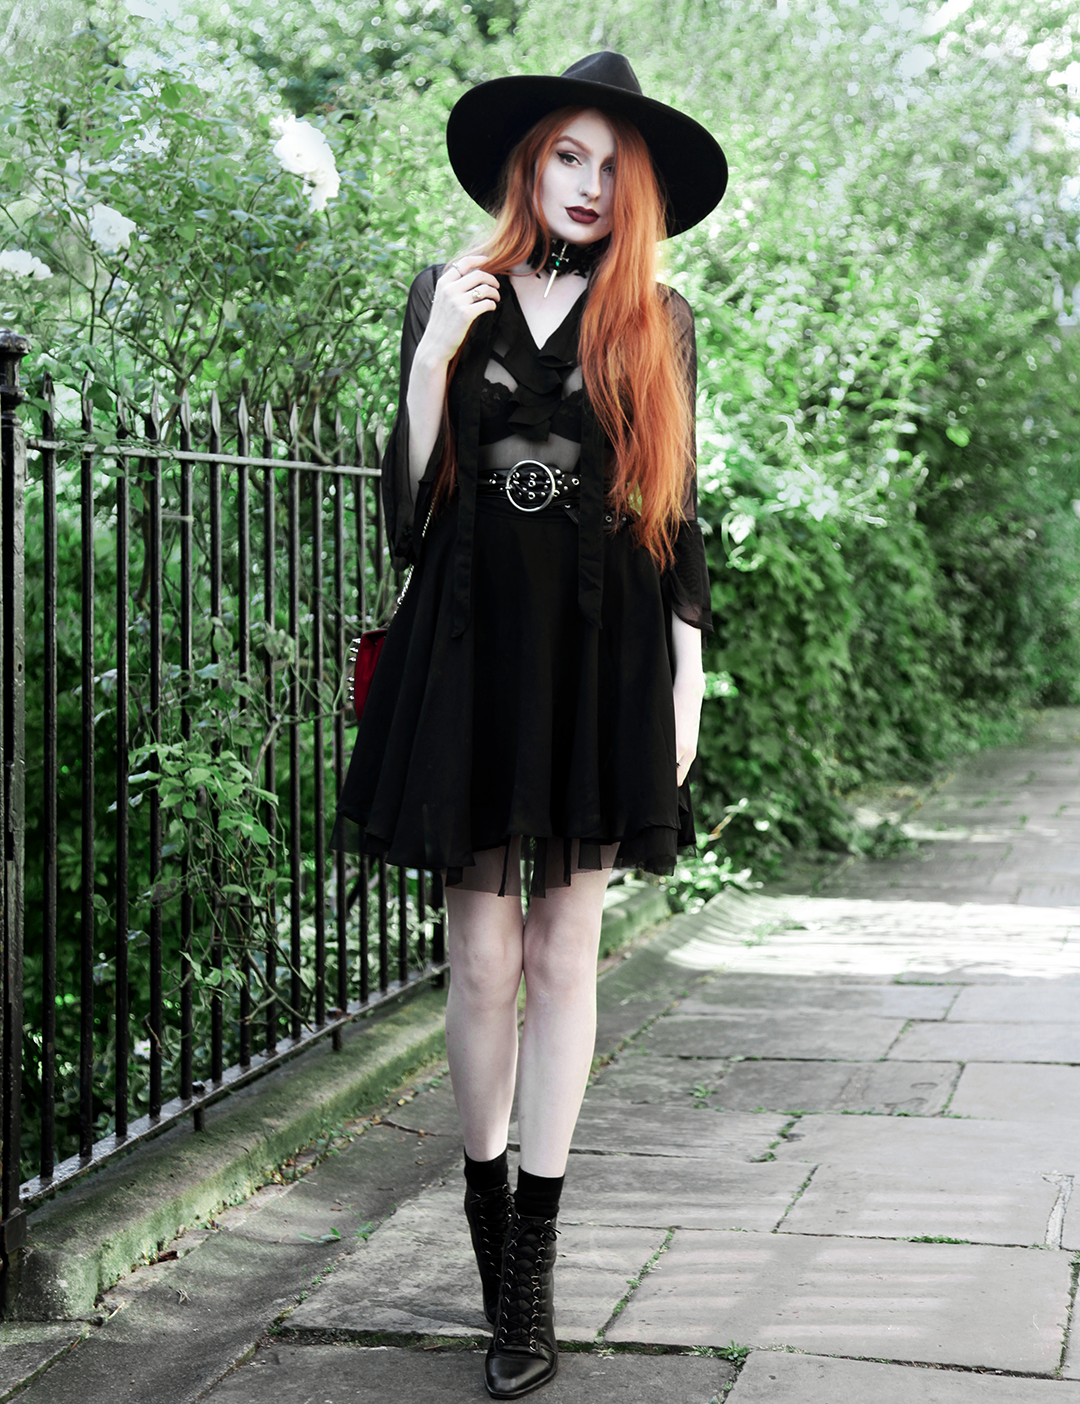 Olivia Emily wears Killstar Witch Brim Hat, Killstar Decay Nu-Mourning dress, Pheren Couture Sword Choker, Asos Eyelet Waist Belt and Asos Pointed Toe Boots